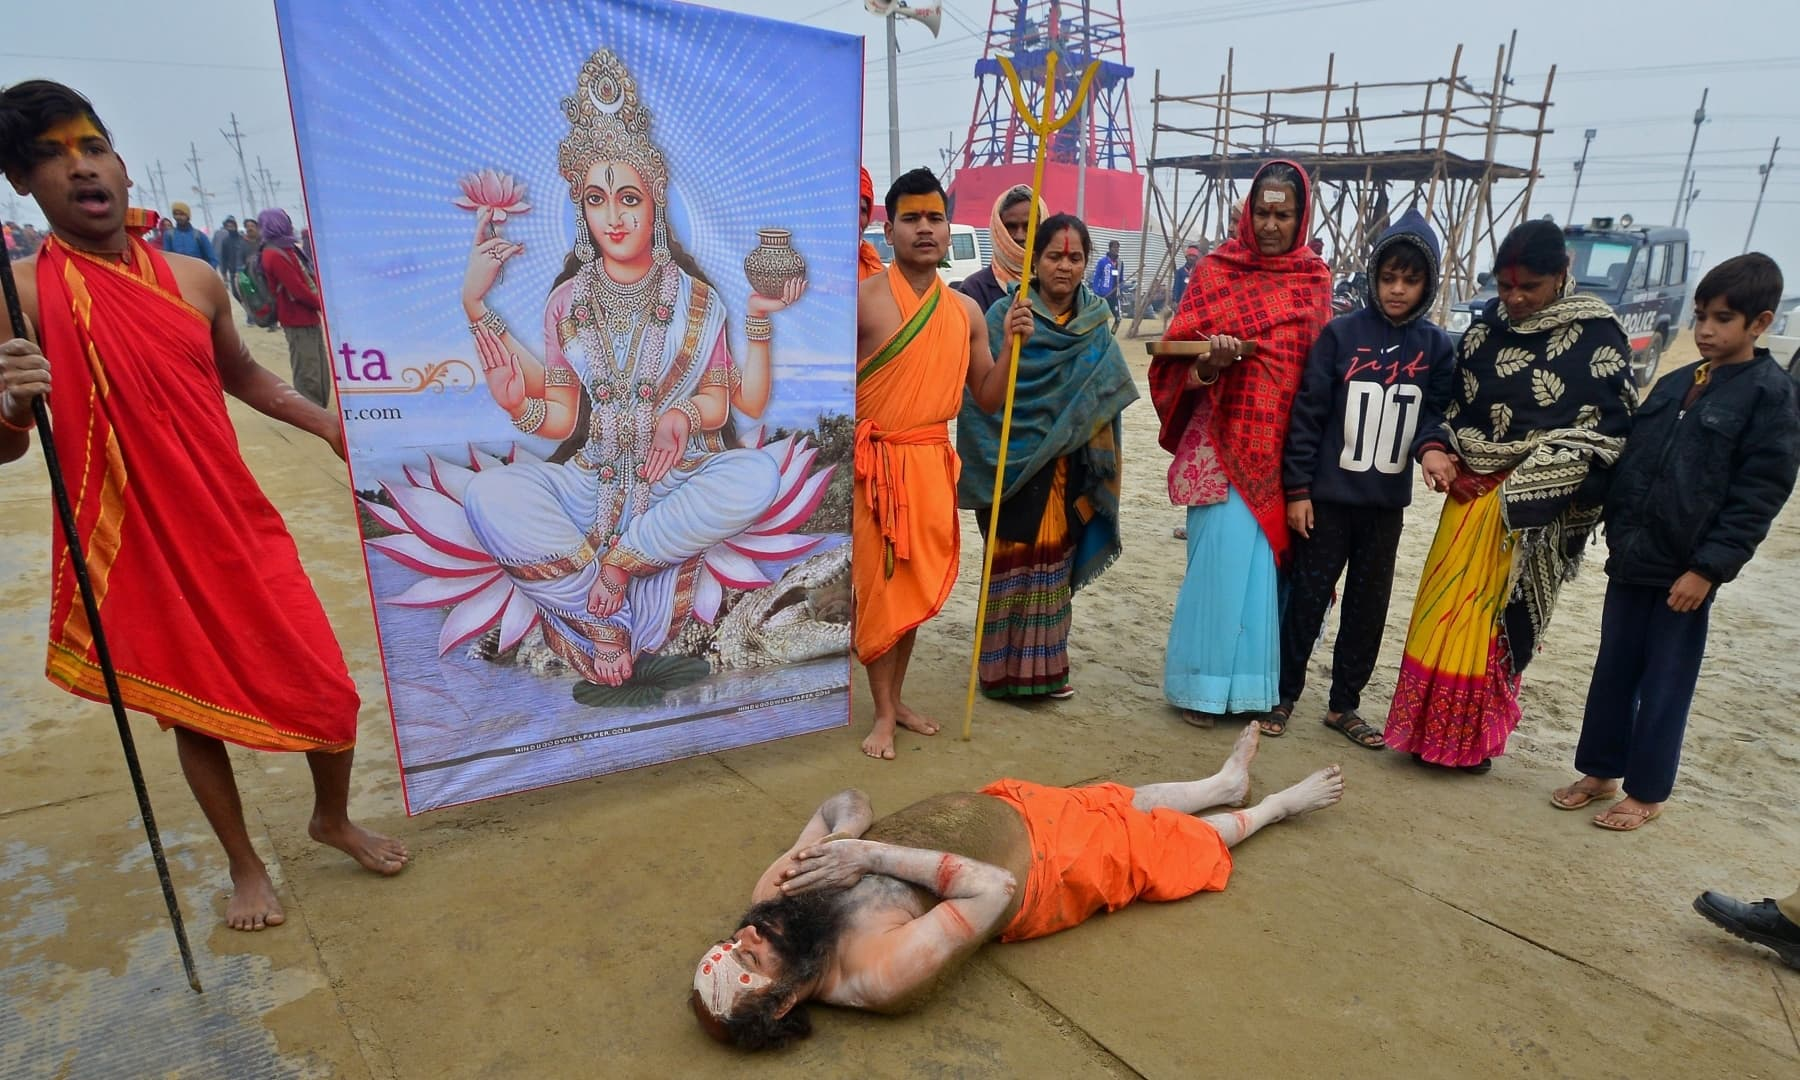 A Sadhu or a Hindu holy man performs a ritual as he arrives to take a holy dip at Sangam, the confluence of rivers Ganges, Yamuna and the mythical Saraswati, on the occasion of Makar Sankranti in Allahabad on January 14, — AFP